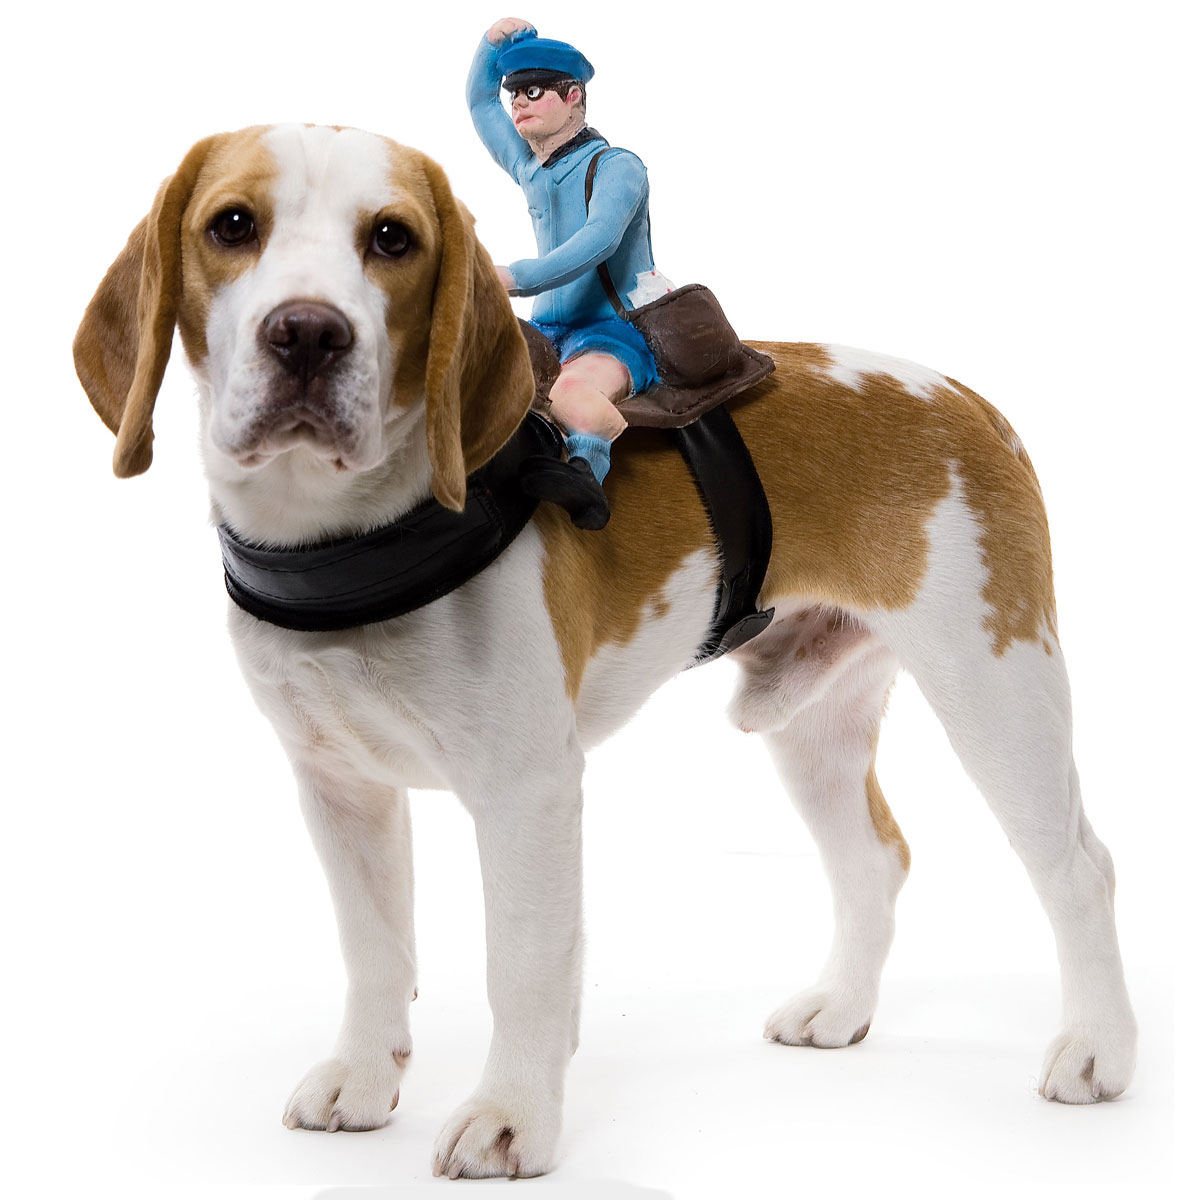 Dog Costumes photo - 1